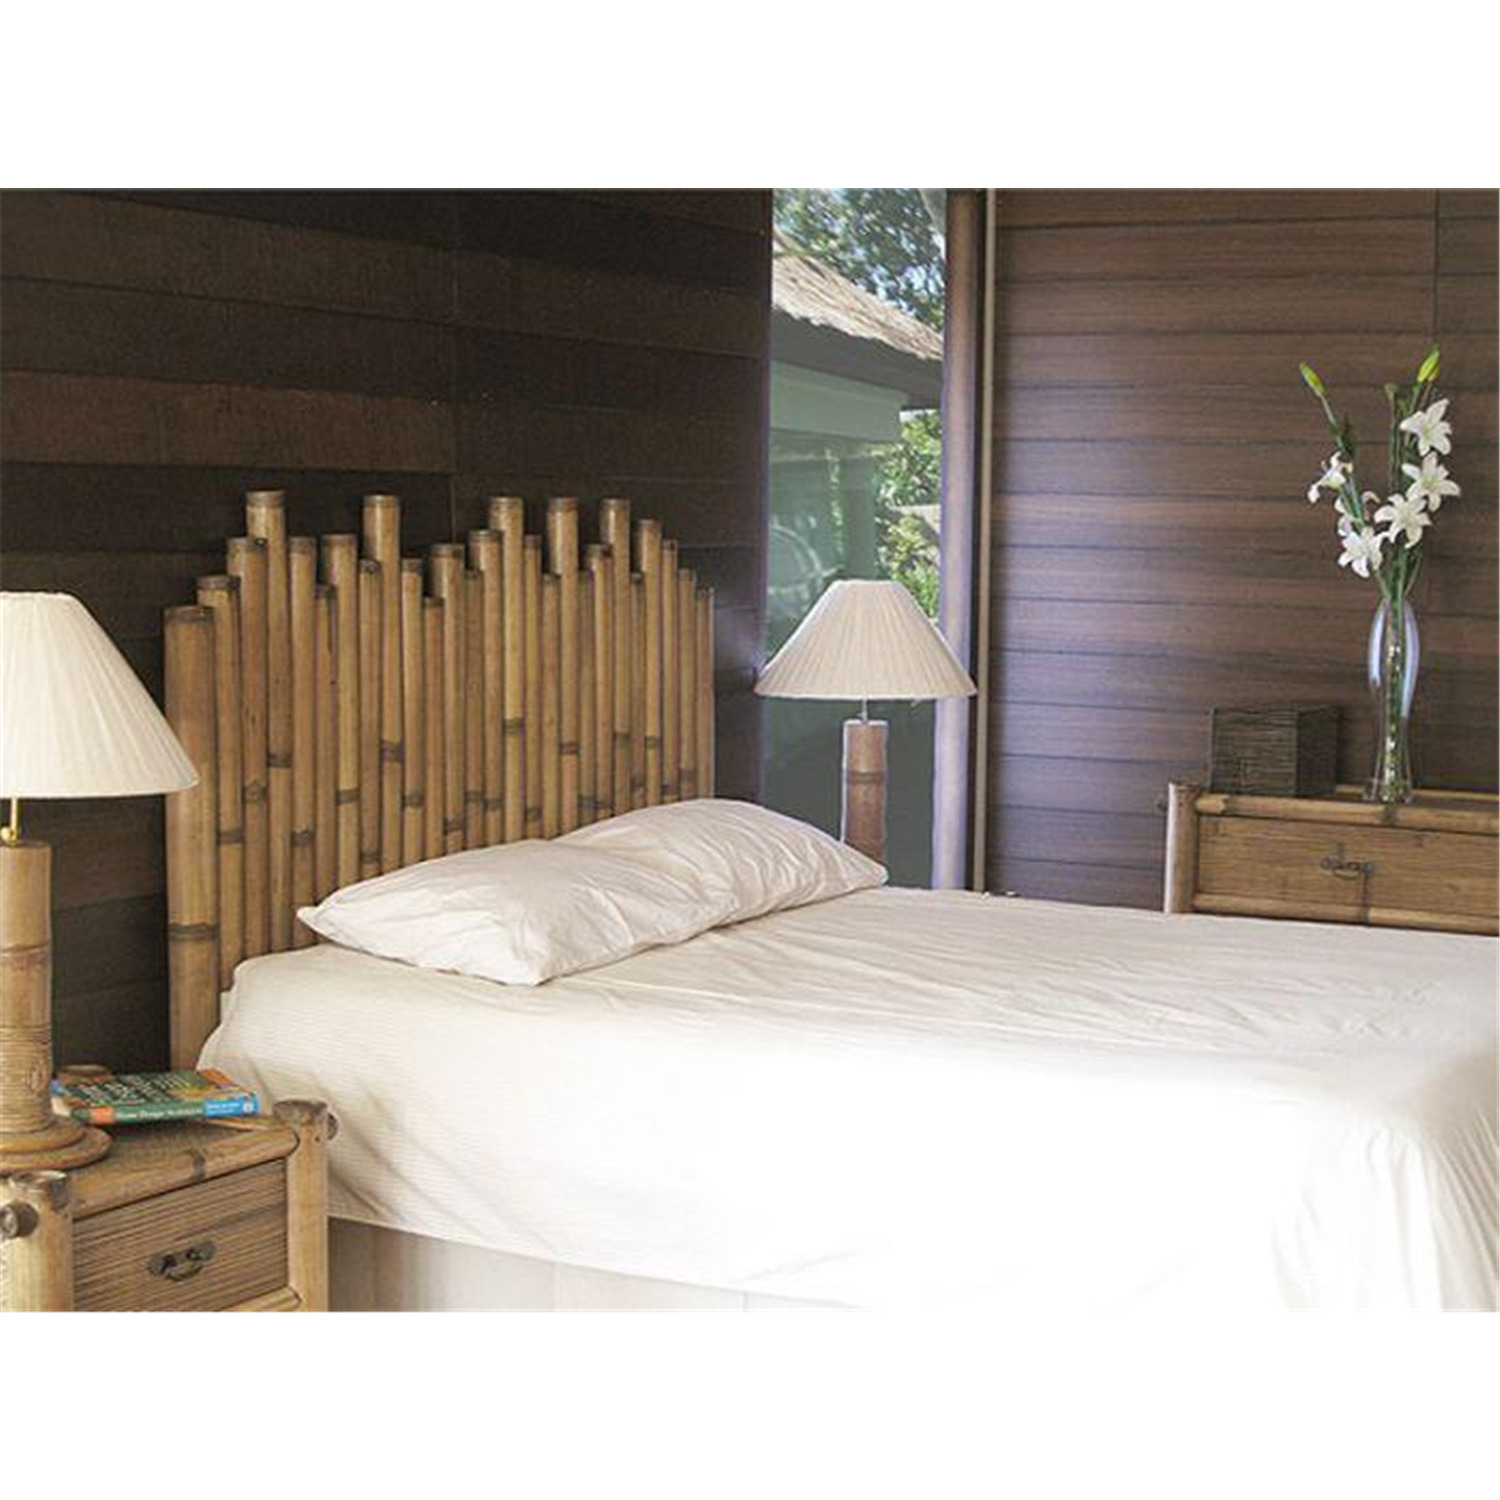 hospitality rattan havana bamboo bedroom set by oj